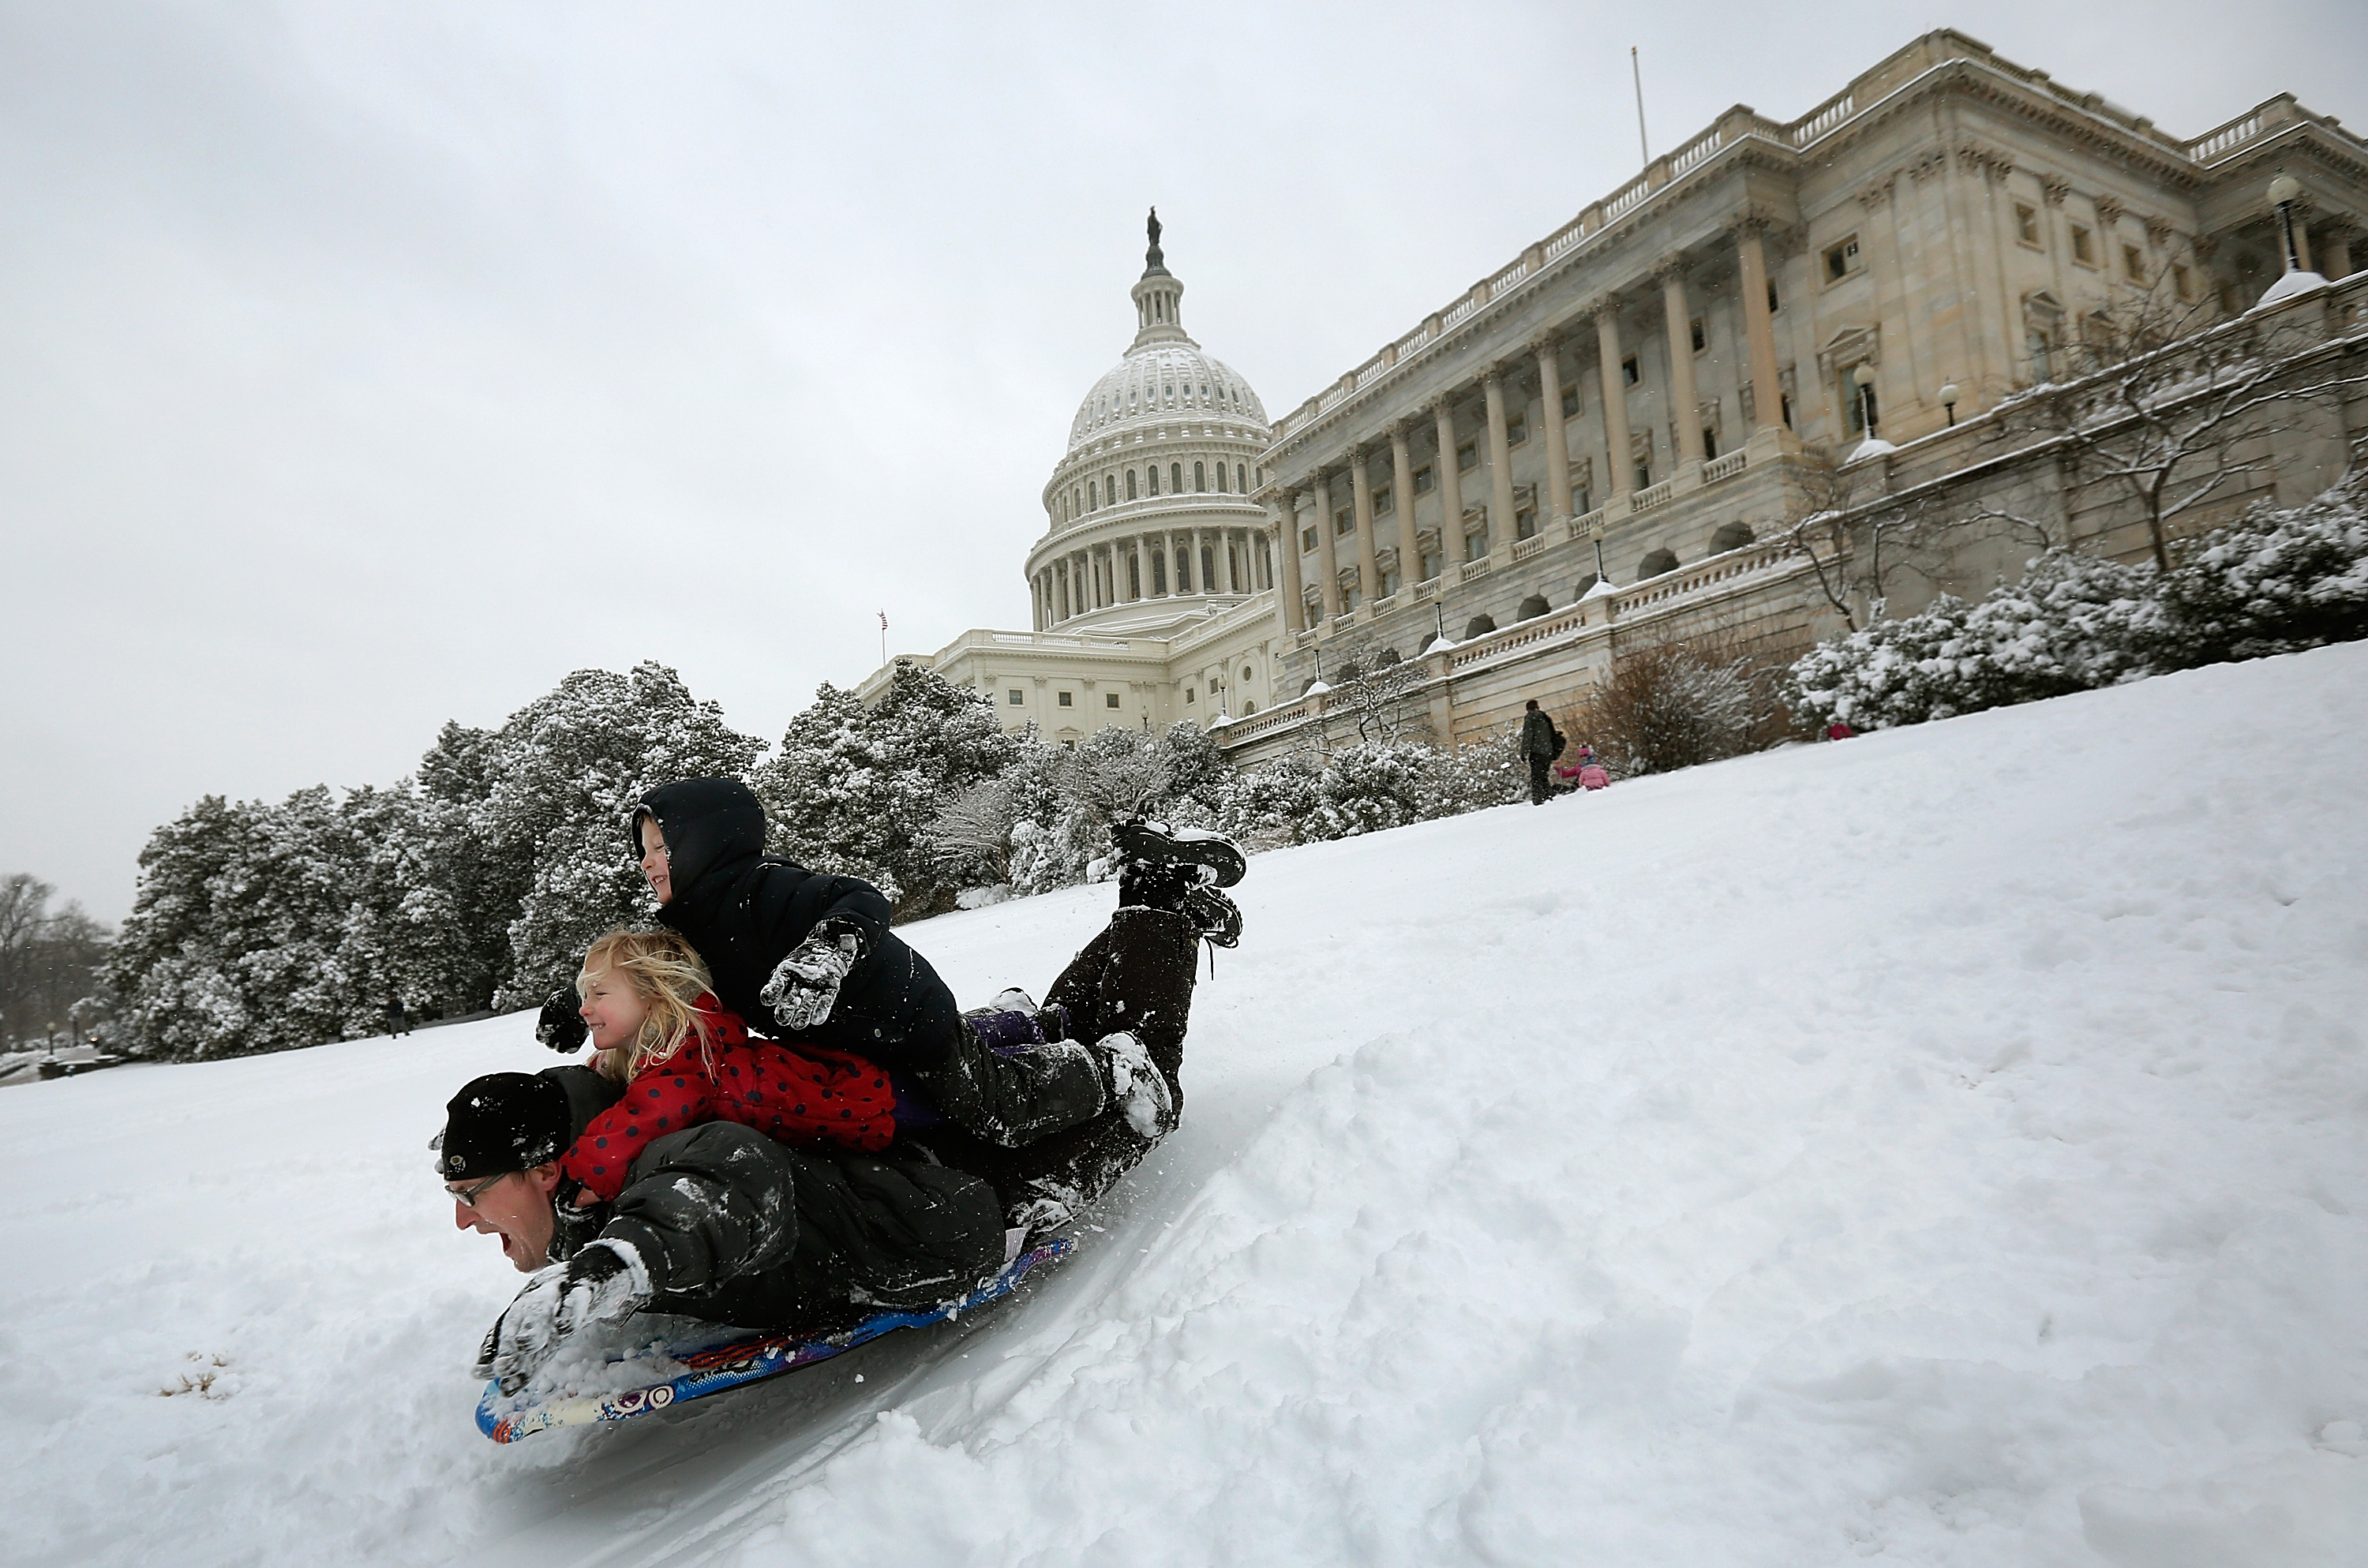 Jon Ward sleds with his daughter Gwen and son Jethro on the west lawn of the U.S. Capitol on March 17, 2014 in Washington D.C.